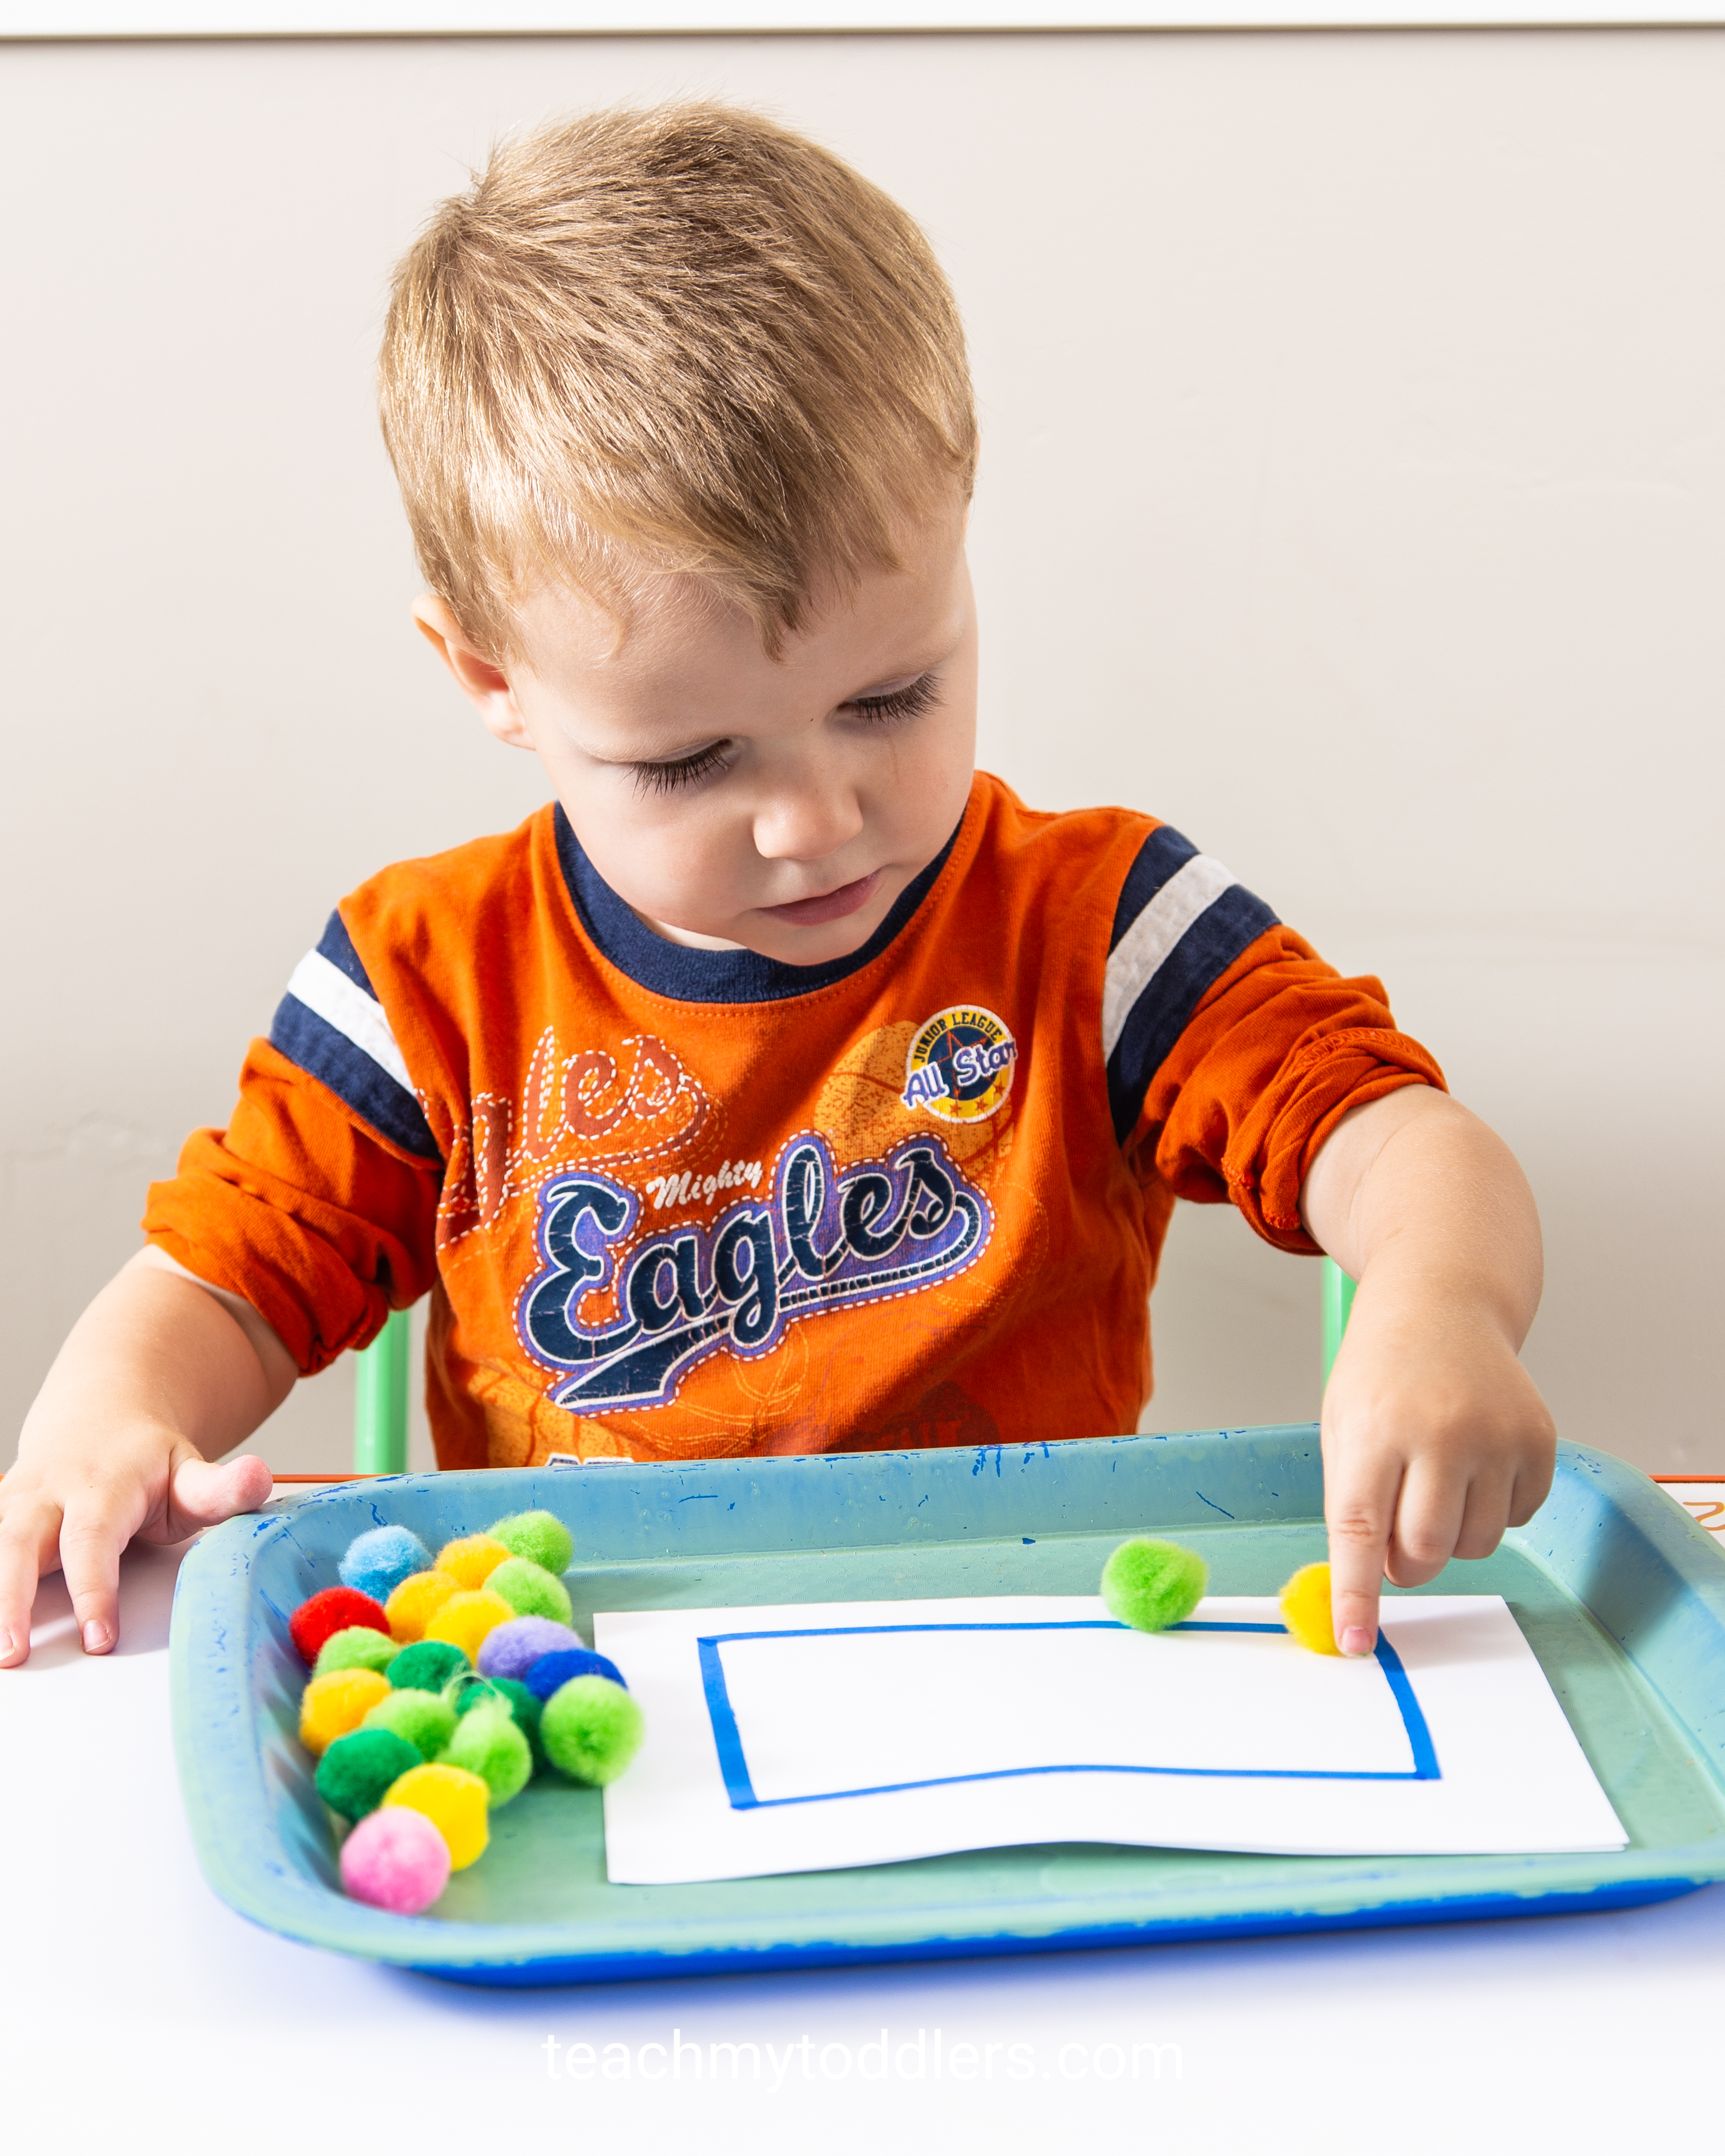 Learn how to use these rectangle trays to teach toddlers shapes